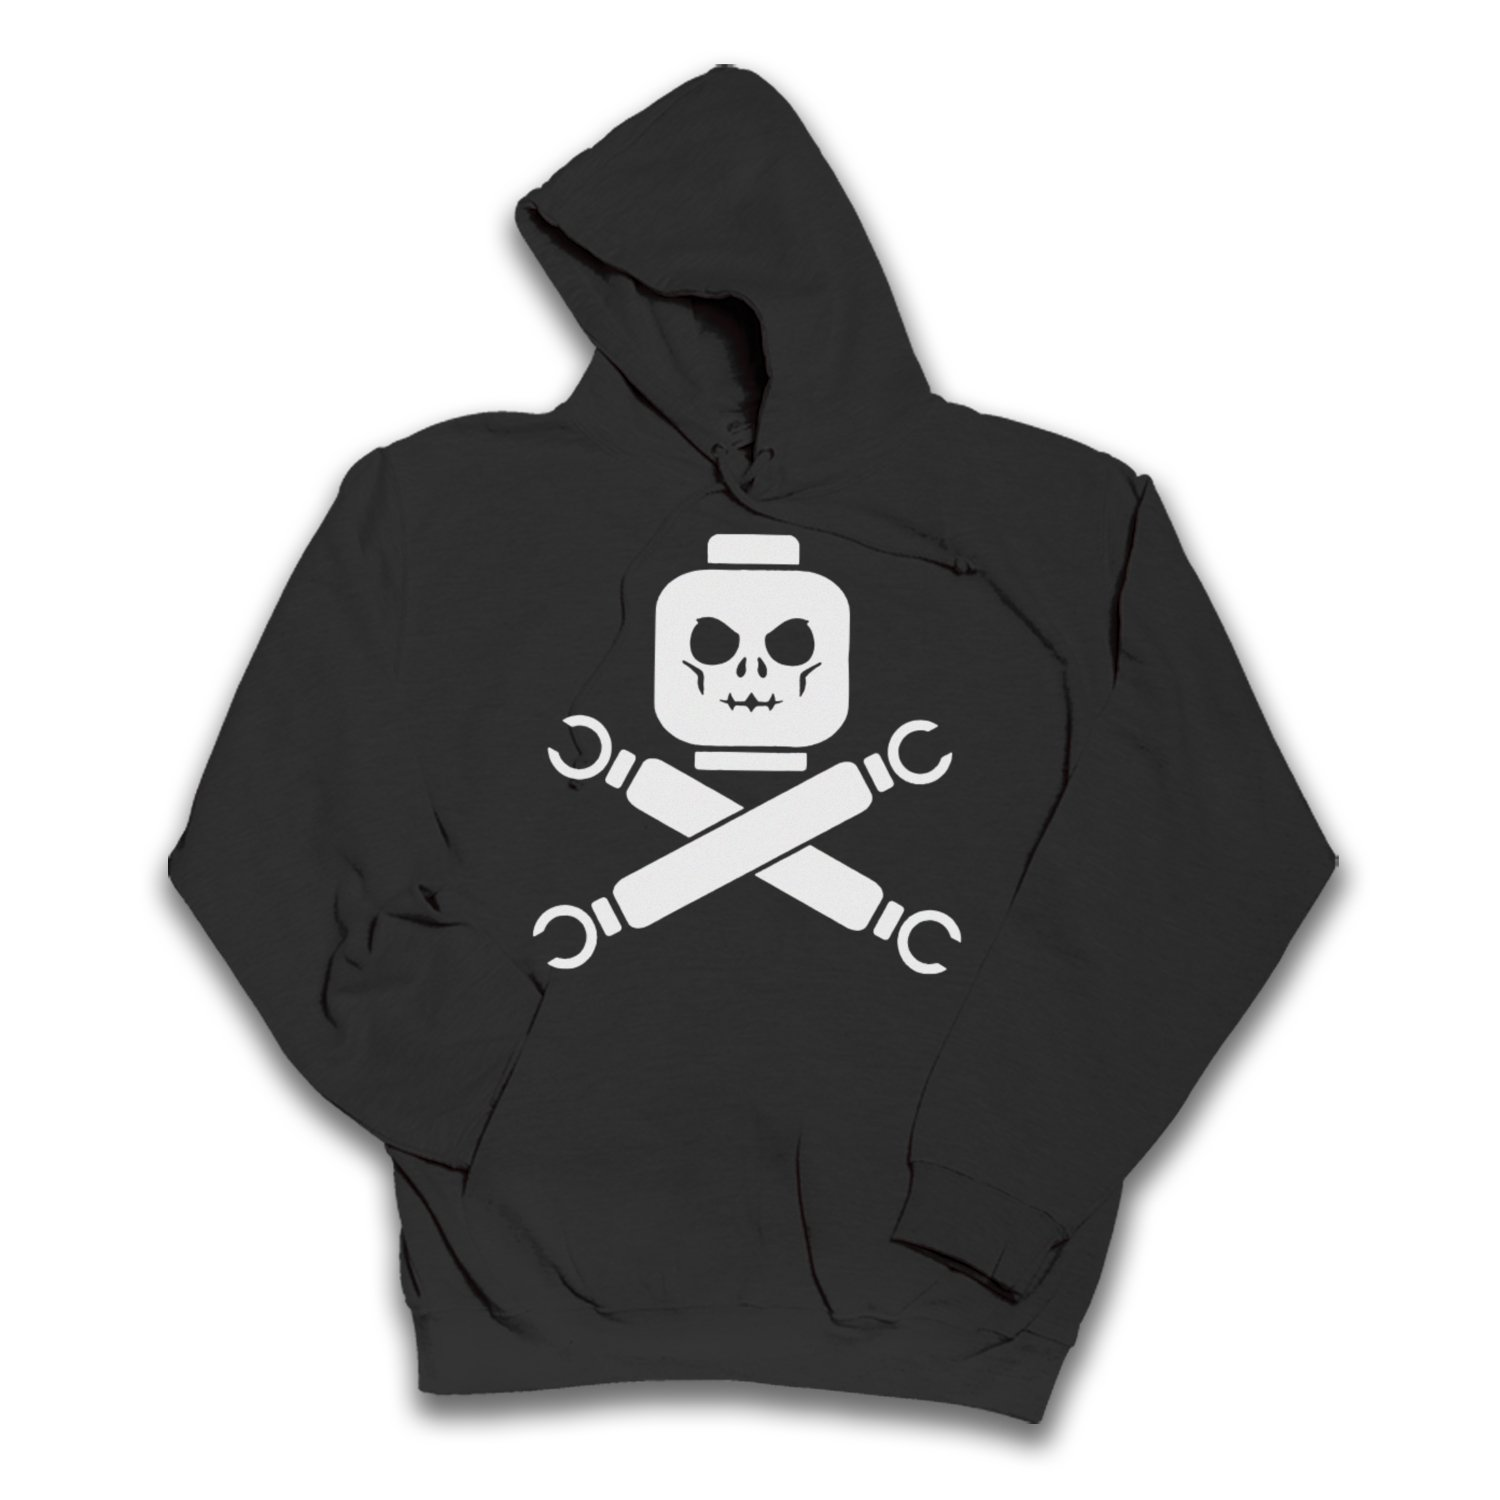 Lego Skull and Cross Bones Unisex Hoodie. All Sizes (Small med large XL XXL 3X 4X 5XL)